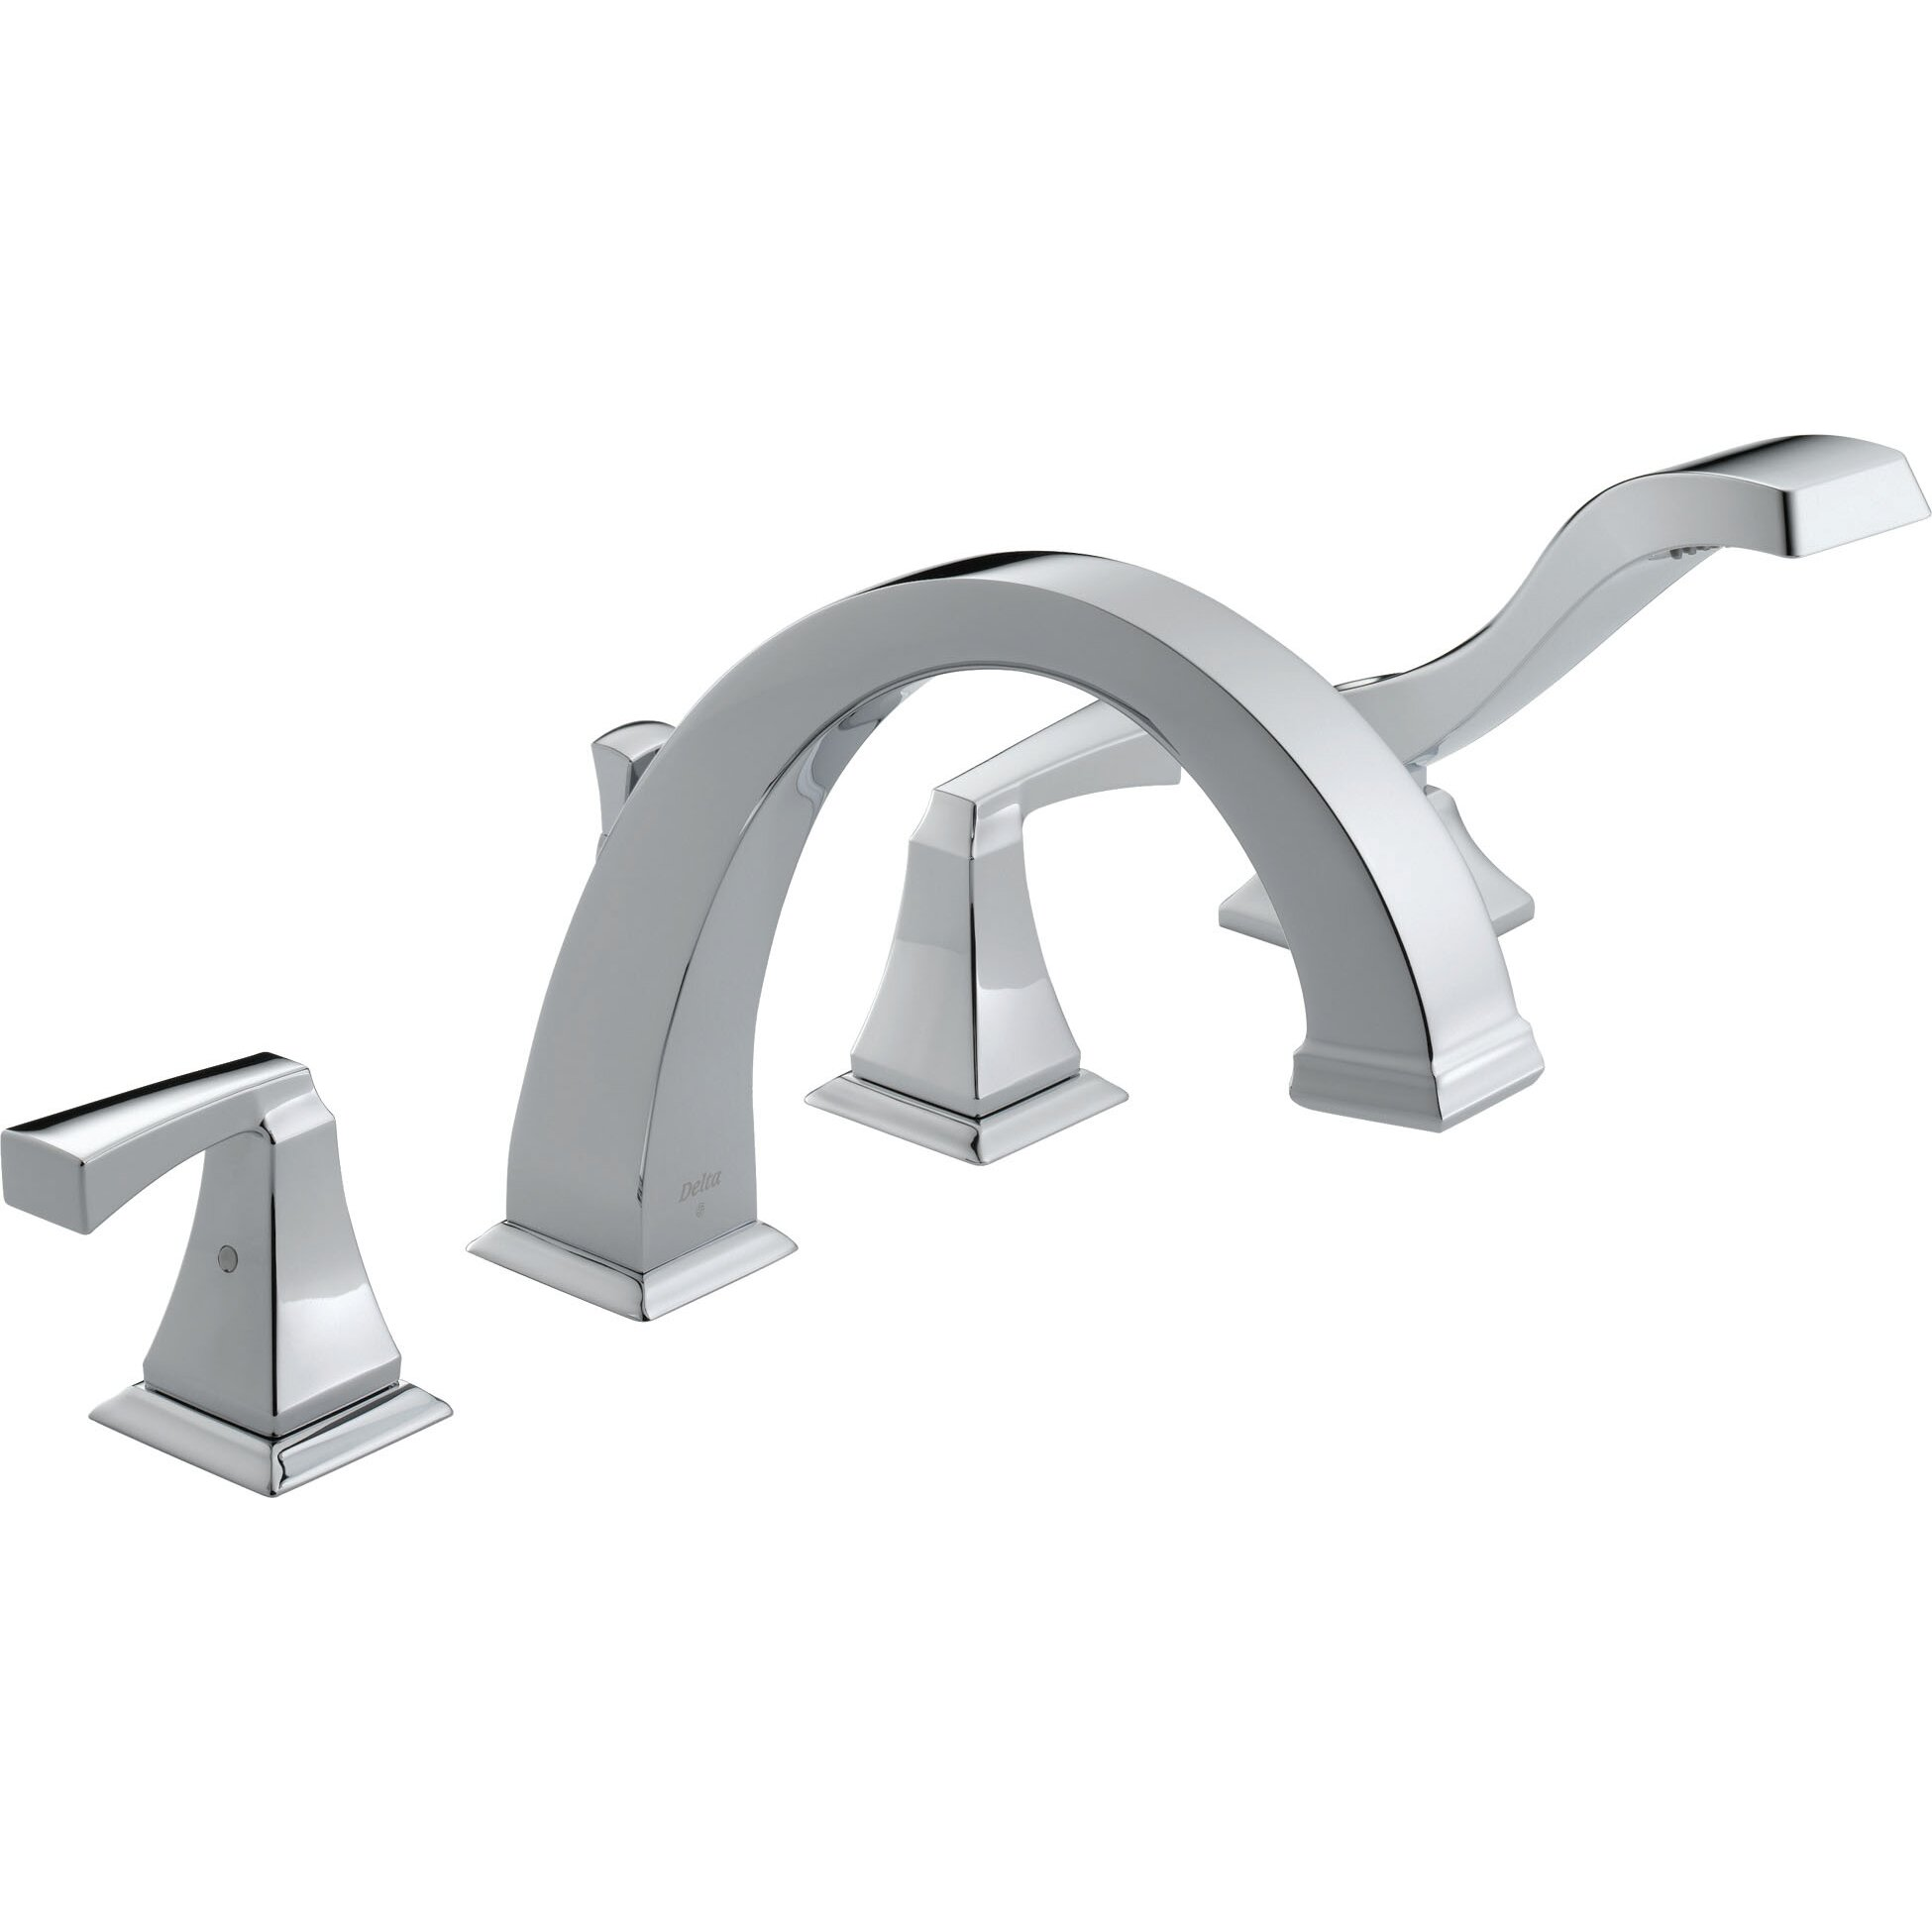 Delta Dryden Roman Two Handle Deck Mount Tub Faucet Trim With Hand - Wall mount roman tub filler